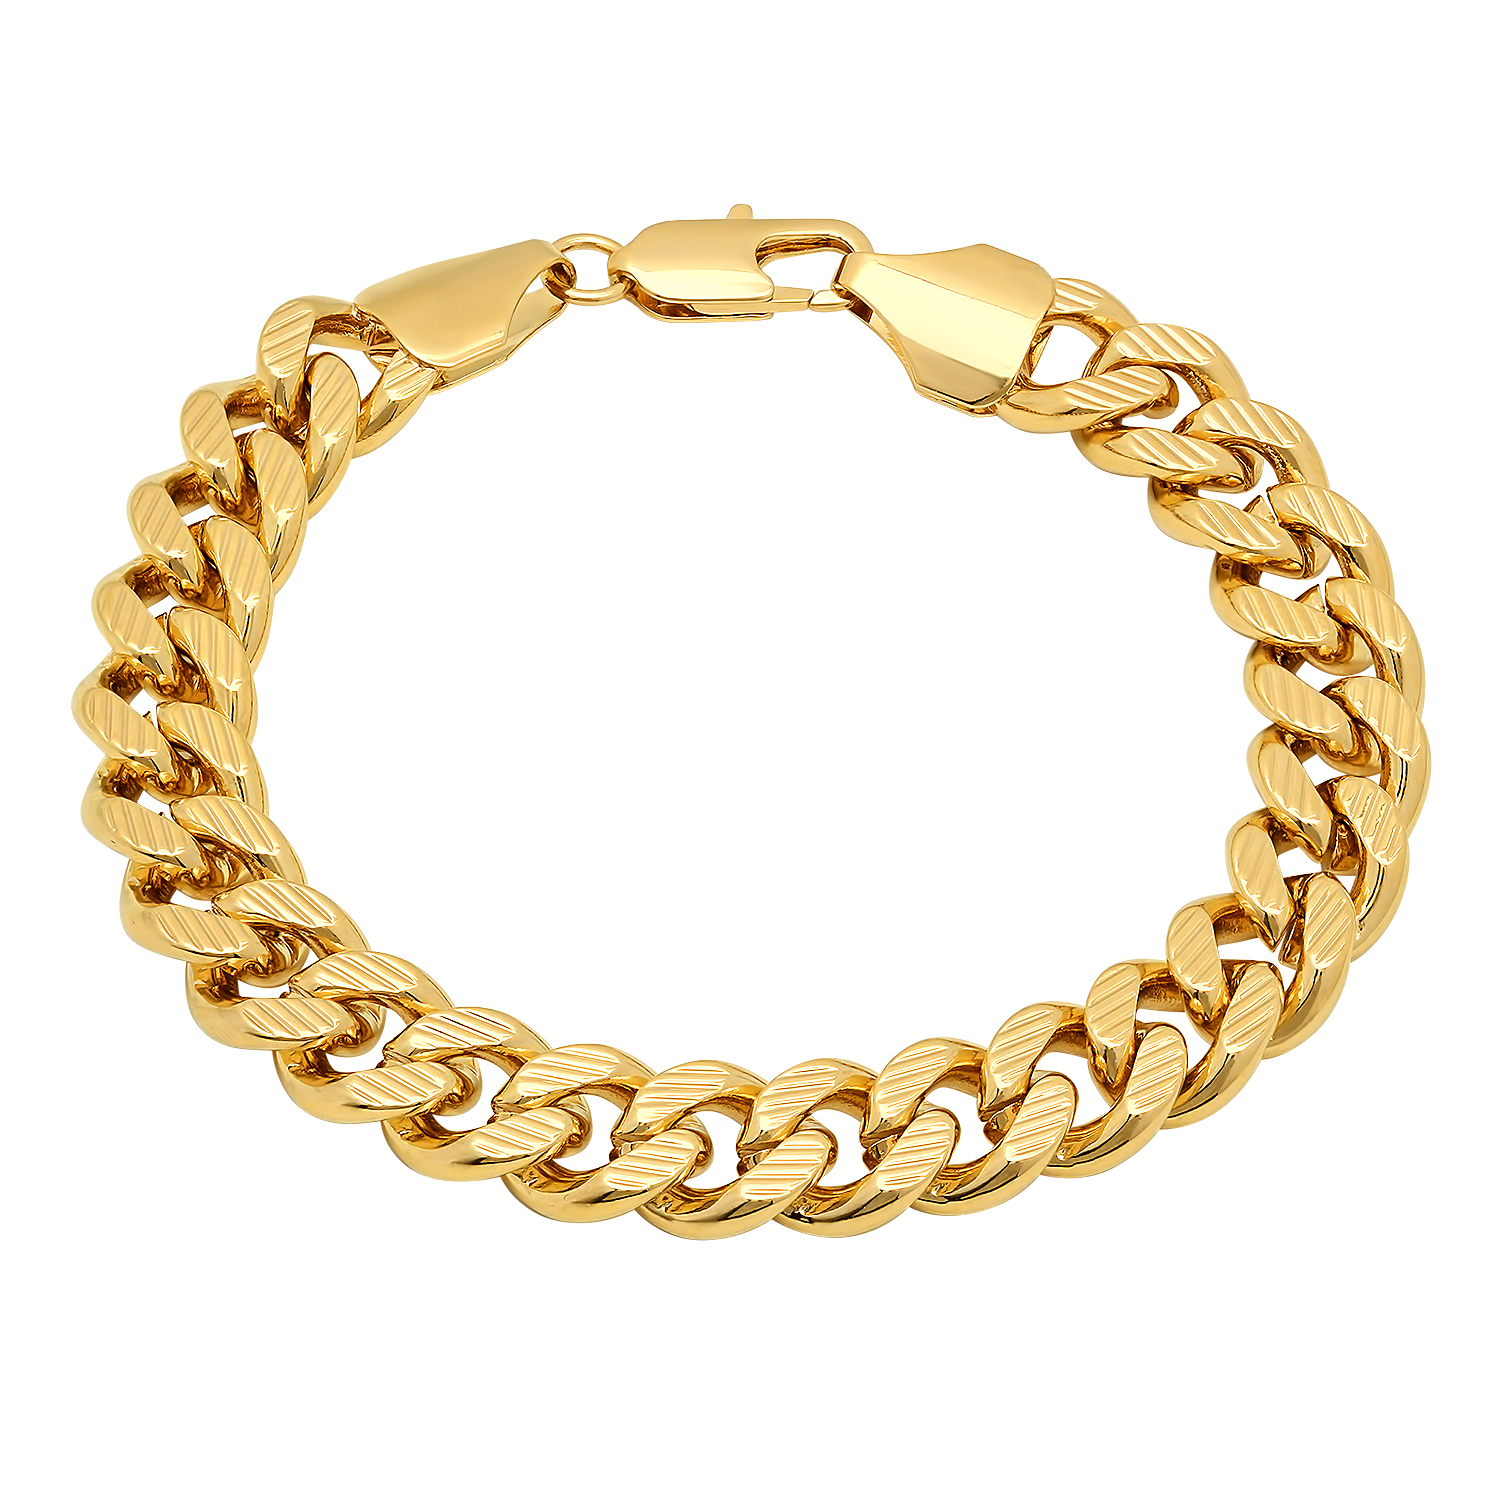 11mm 14k Gold Plated Grooved Cuban Link Curb Chain  Ebay. Small Diamond Wedding Band. Sterling Silver Pearls. Pink Tourmaline Pendant. Cocoa Diamond. 18 Carat Diamond. Handcrafted Bracelet. Adjustable Charm Bangle. Girly Rings